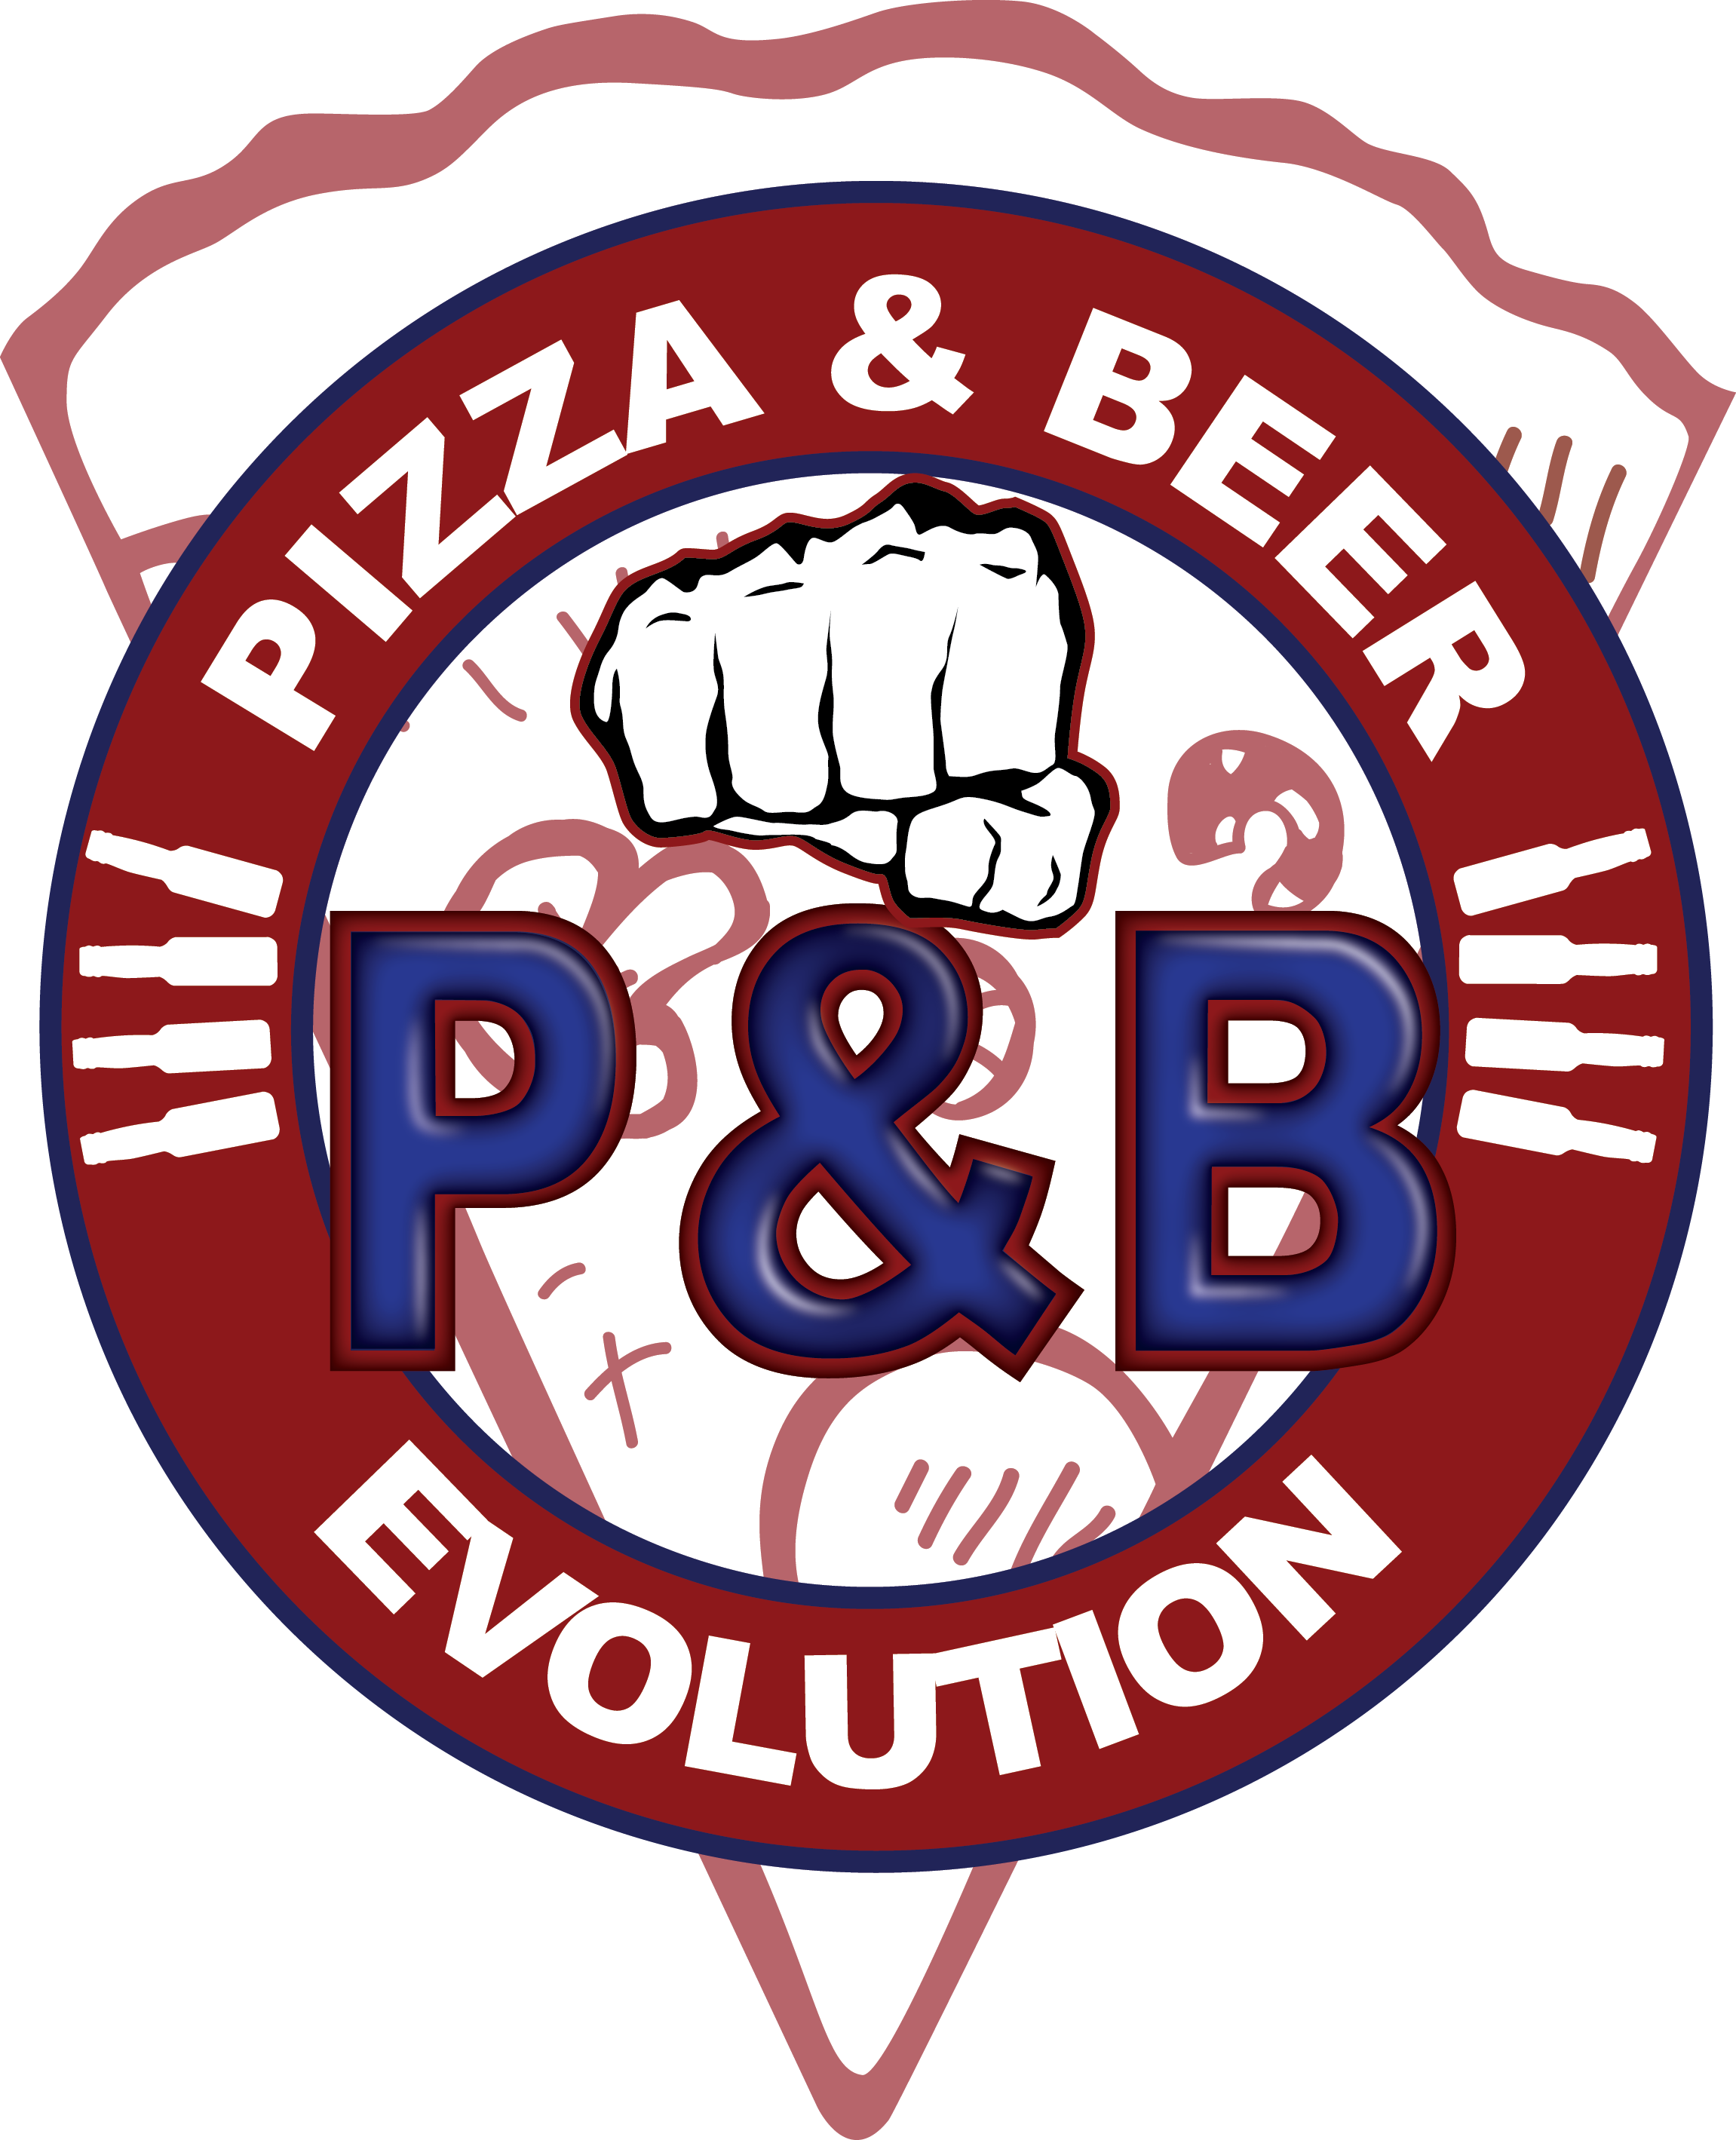 PIZZA BEER BAR PUB Macul